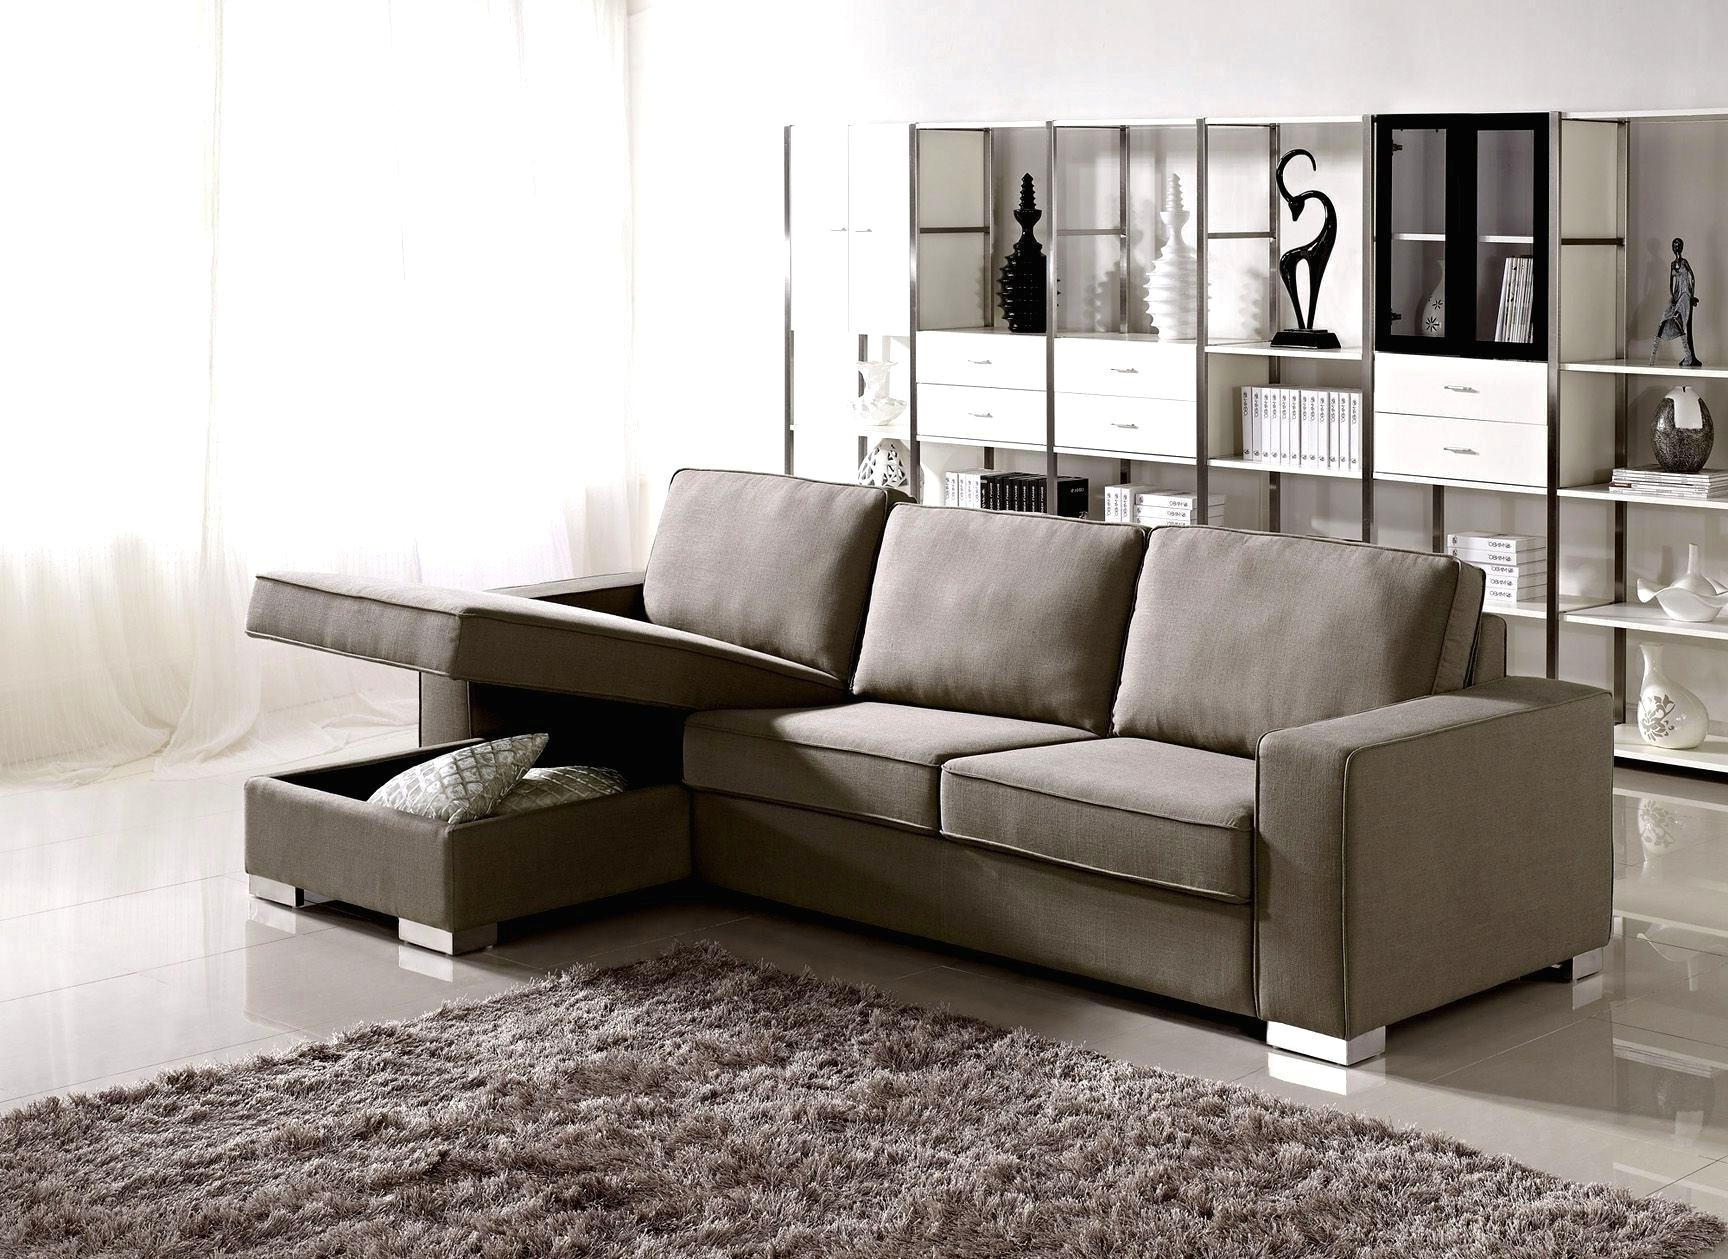 Well Known Sectional Sofas In San Antonio In Inspirational Sectional Sofa San Antonio – Buildsimplehome (View 19 of 20)